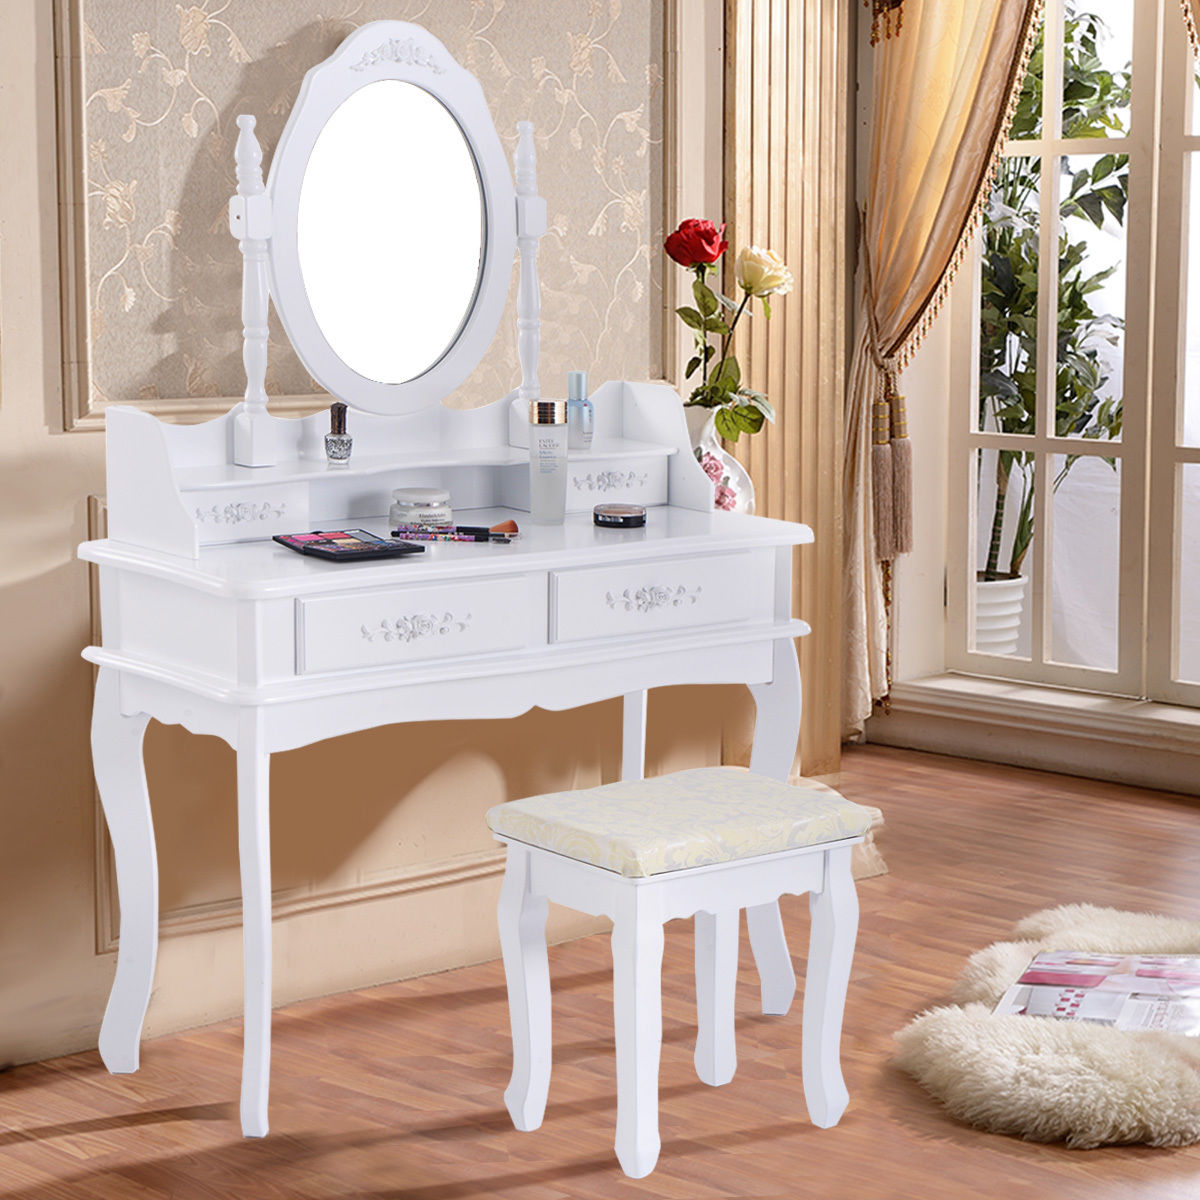 Giantex White Vanity Table Jewelry Makeup Dressing Table Set with Stool and 4 Drawerd Mo ...